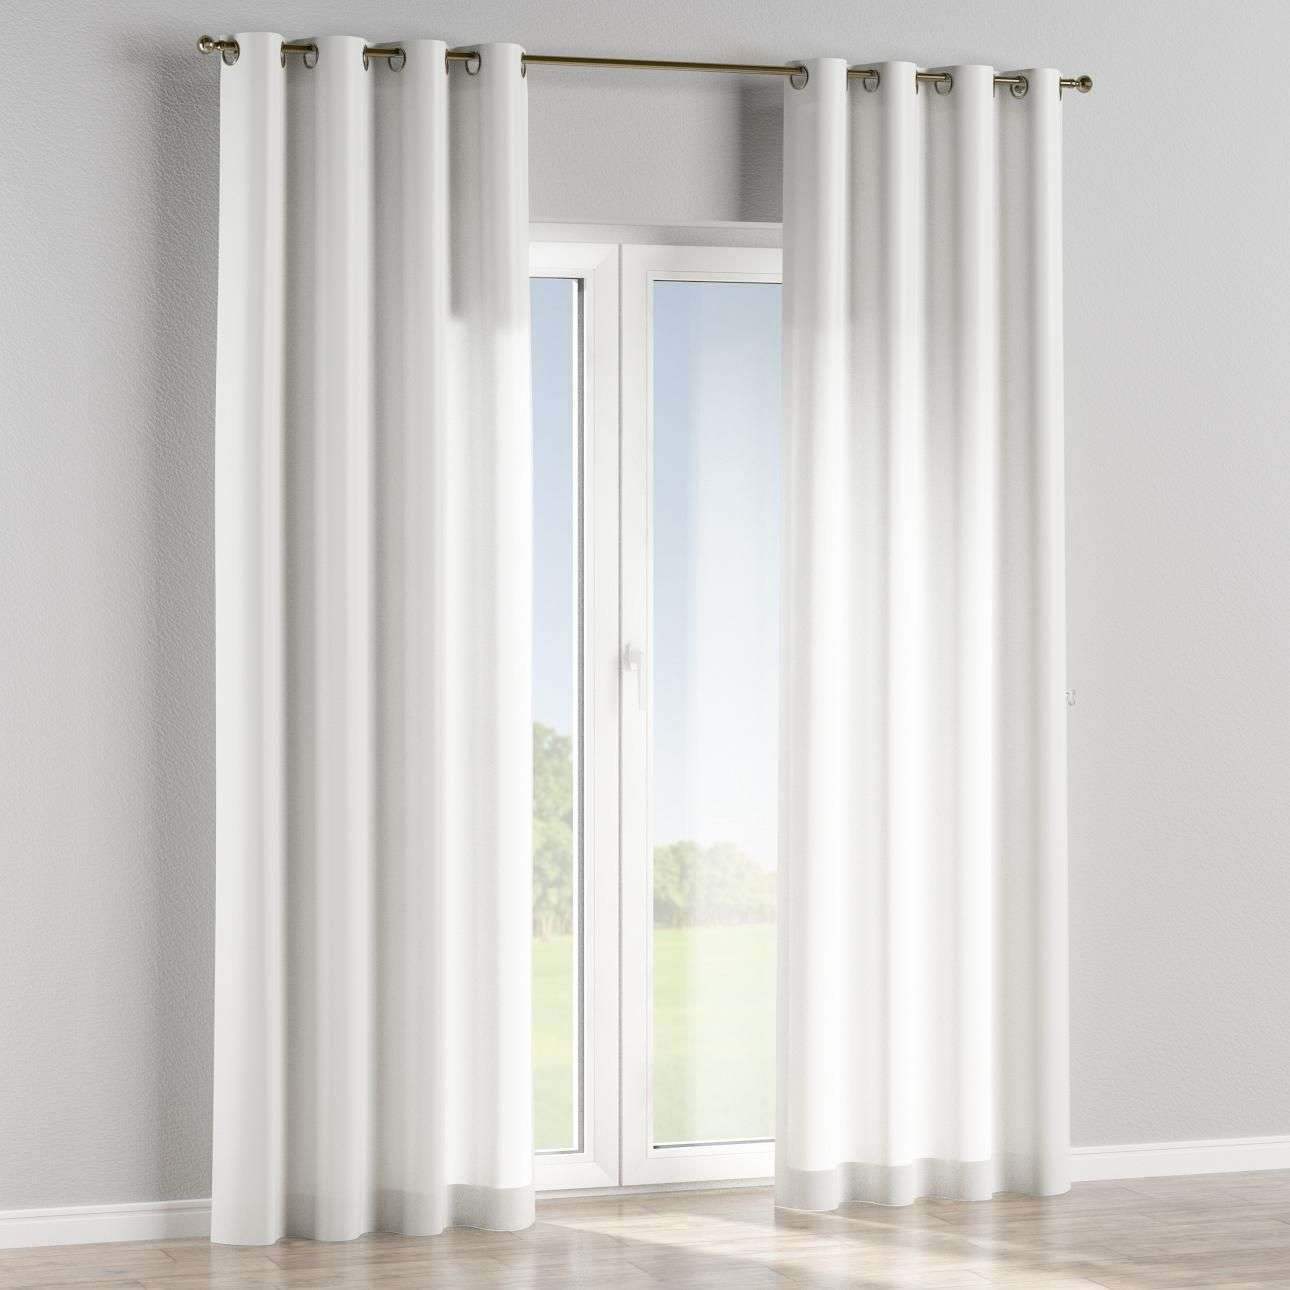 Eyelet curtains in collection Freestyle, fabric: 137-60